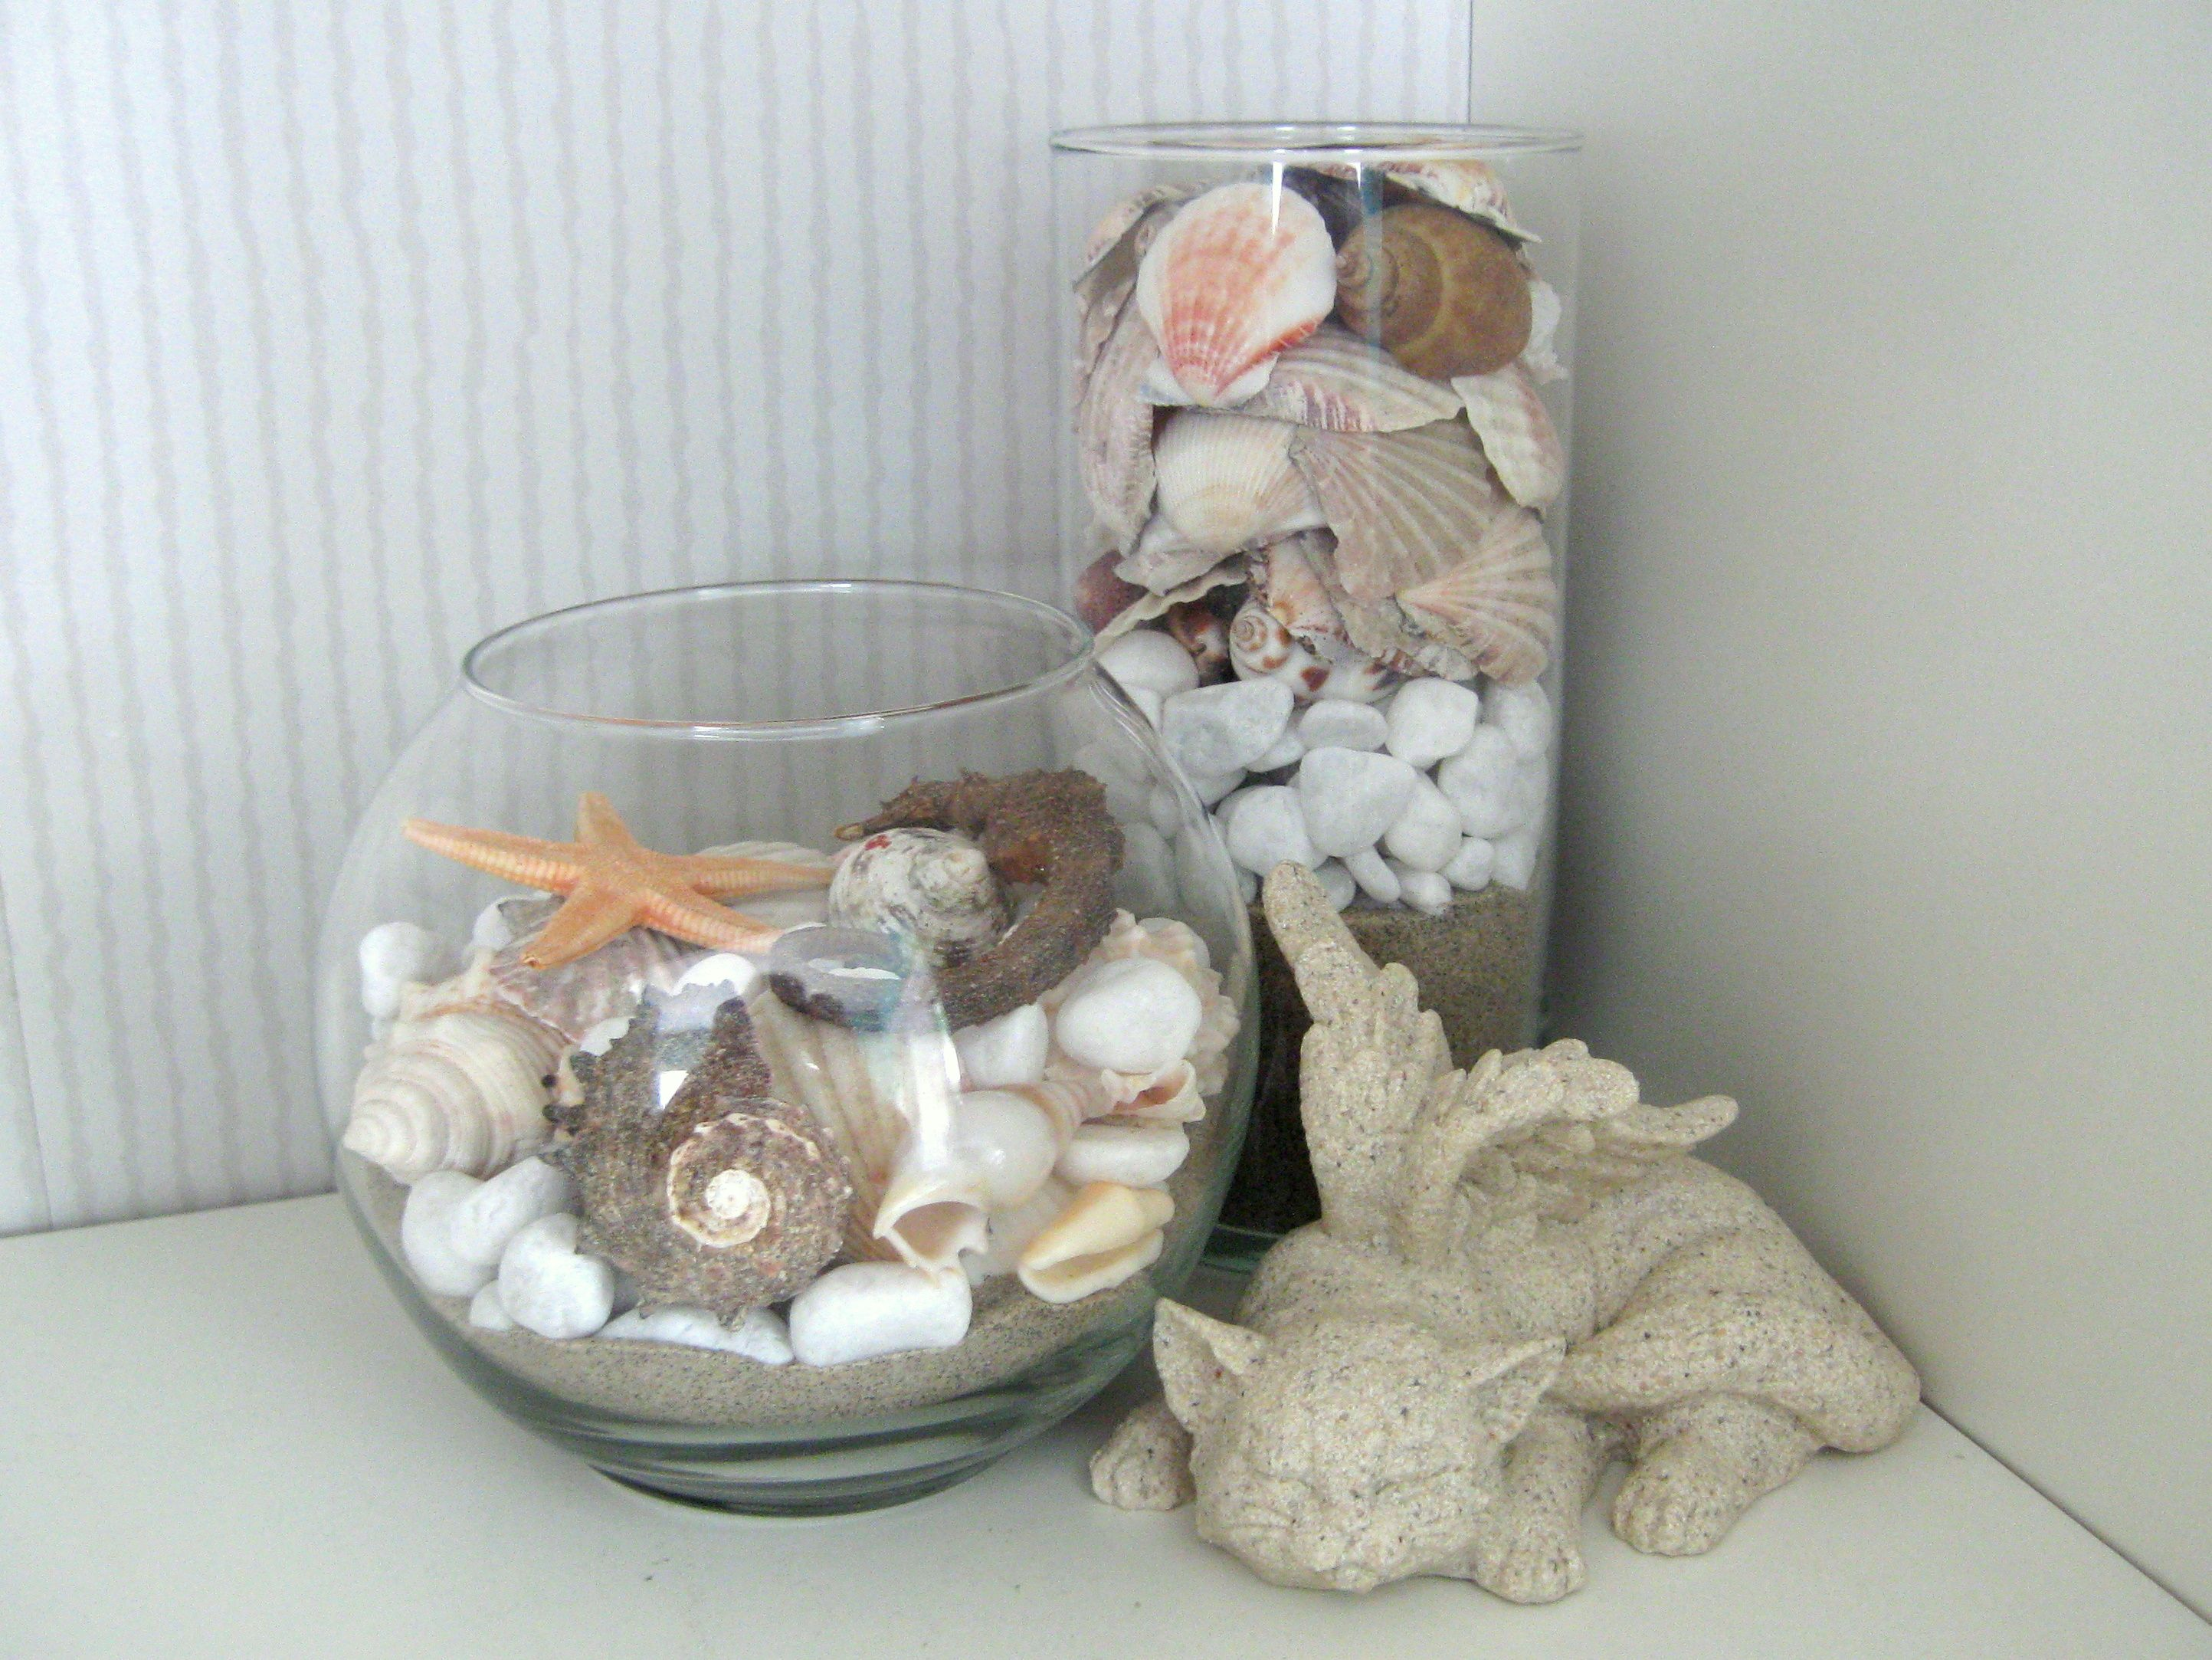 Diy decor for our beach home glass bowl vase and shells